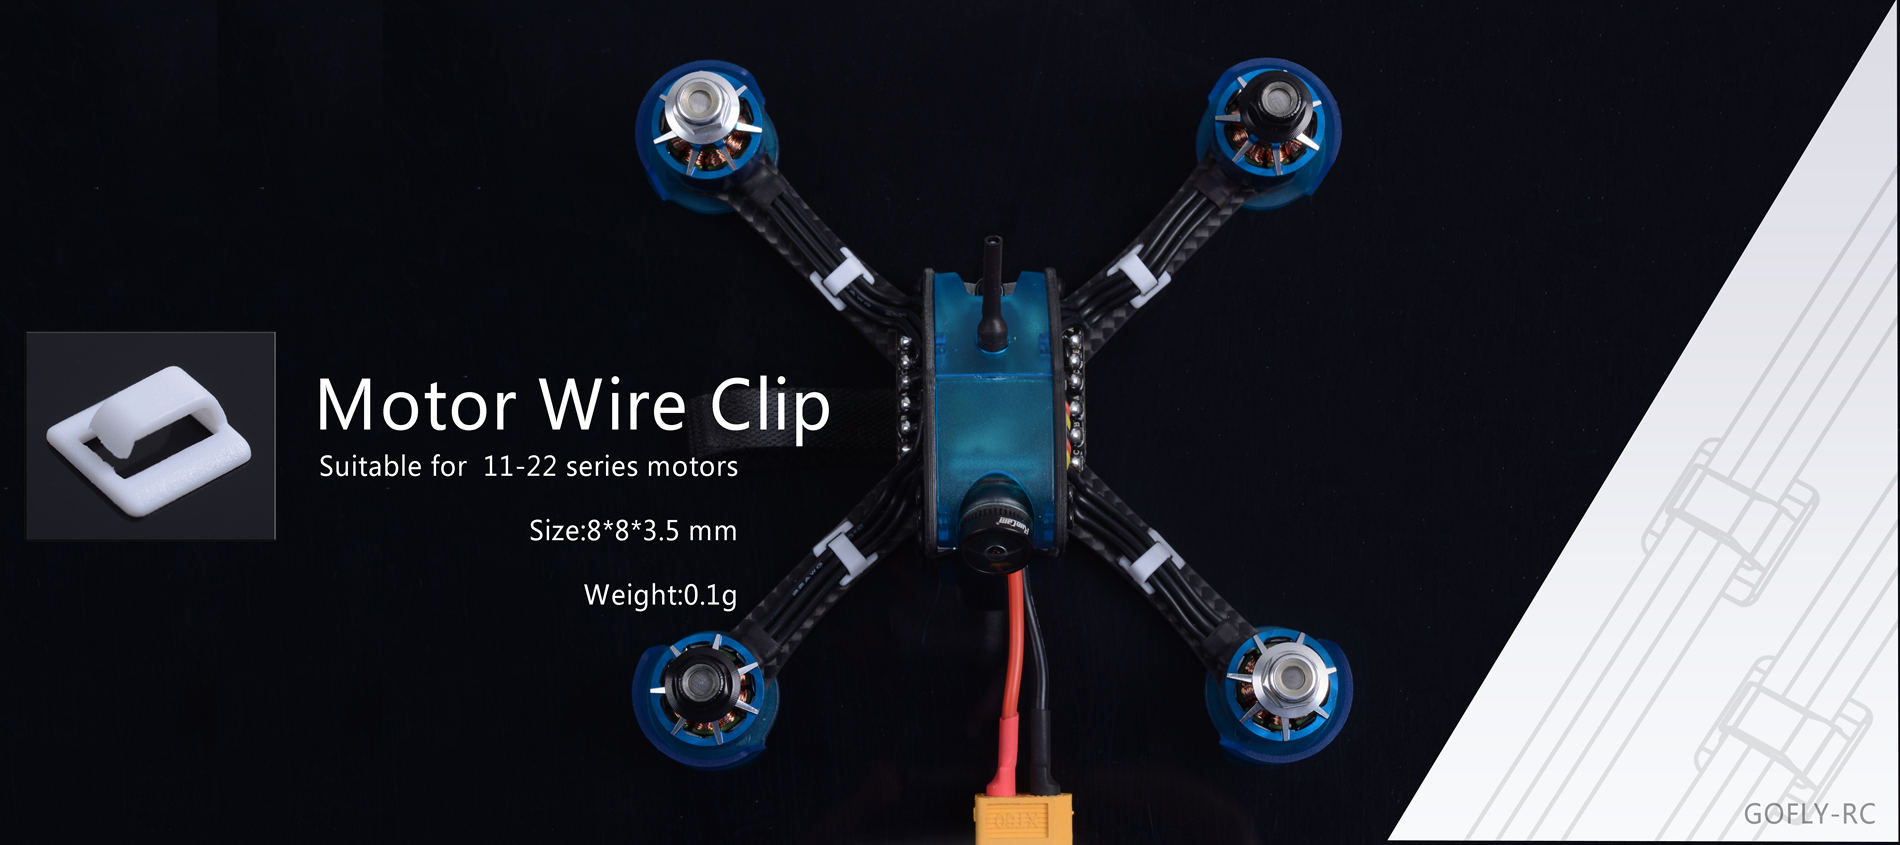 GOFLY-RC Motor Wire Clip